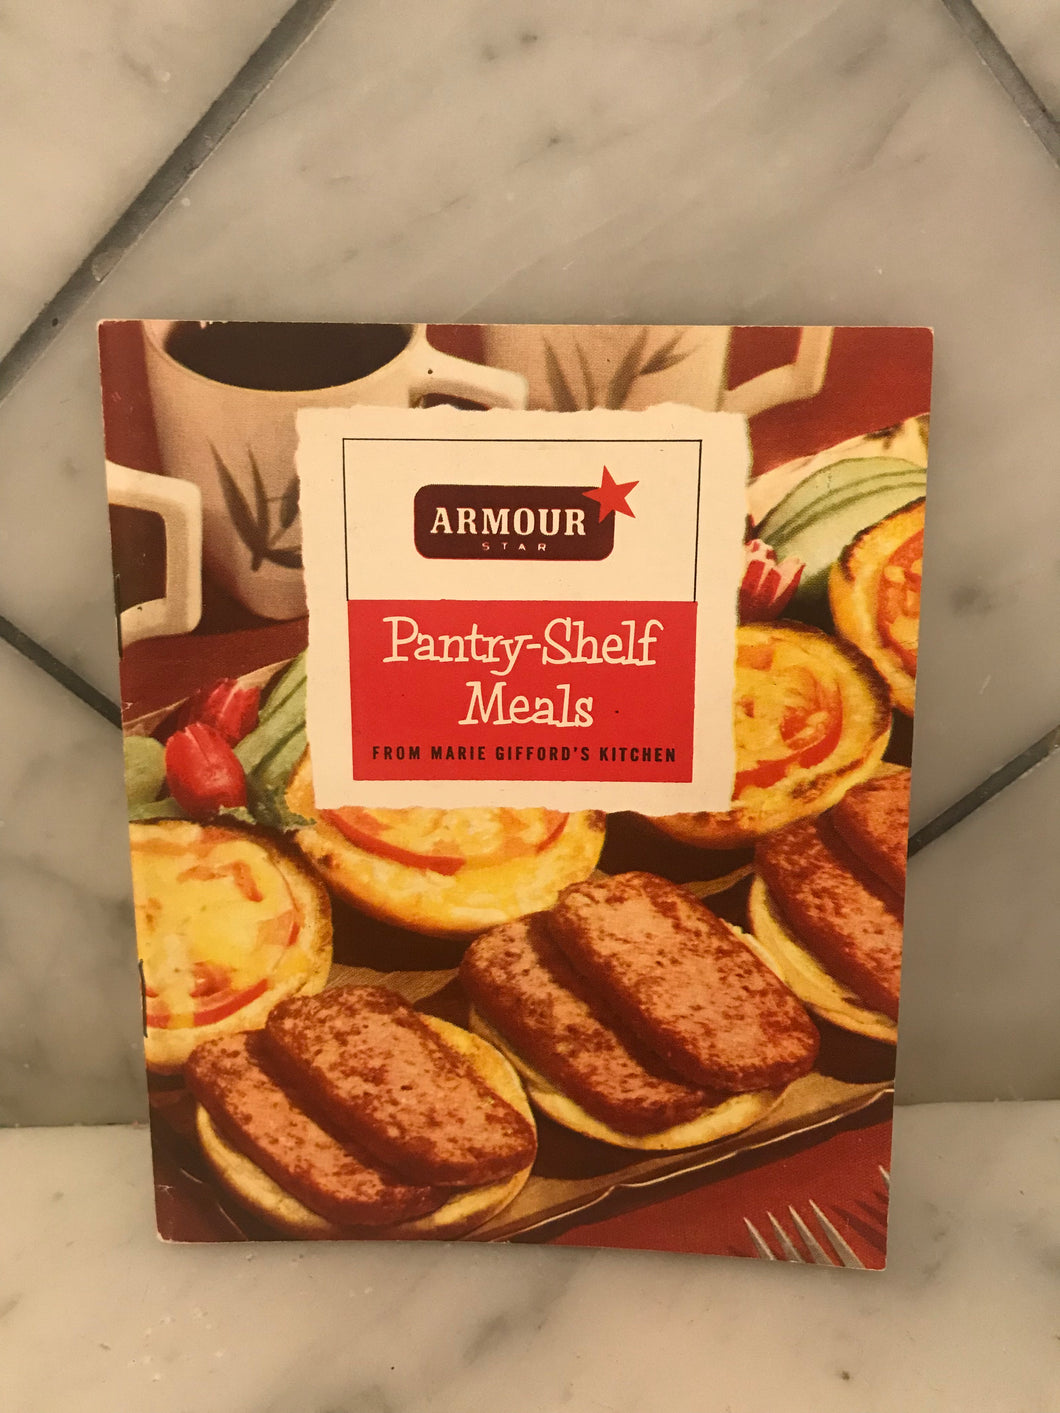 Armour Star Pantry-Shelf Meals From Marie Gifford's Kitchen